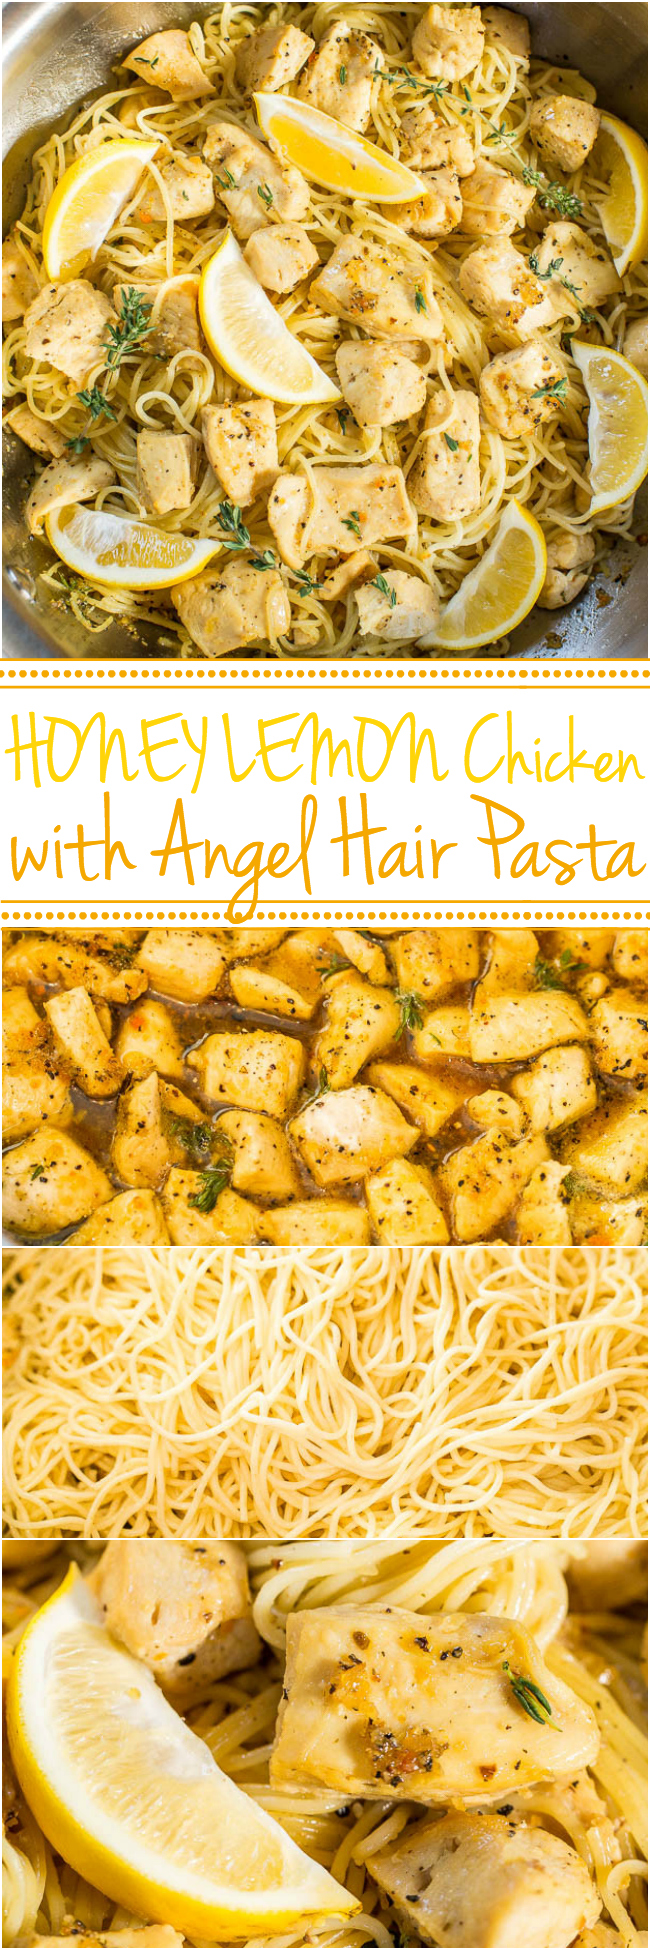 Honey Lemon Chicken with Angel Hair Pasta - Easy, ready in 20 minutes, and you'll love the tangy-sweet flavor!! A healthy weeknight dinner for those busy nights!!